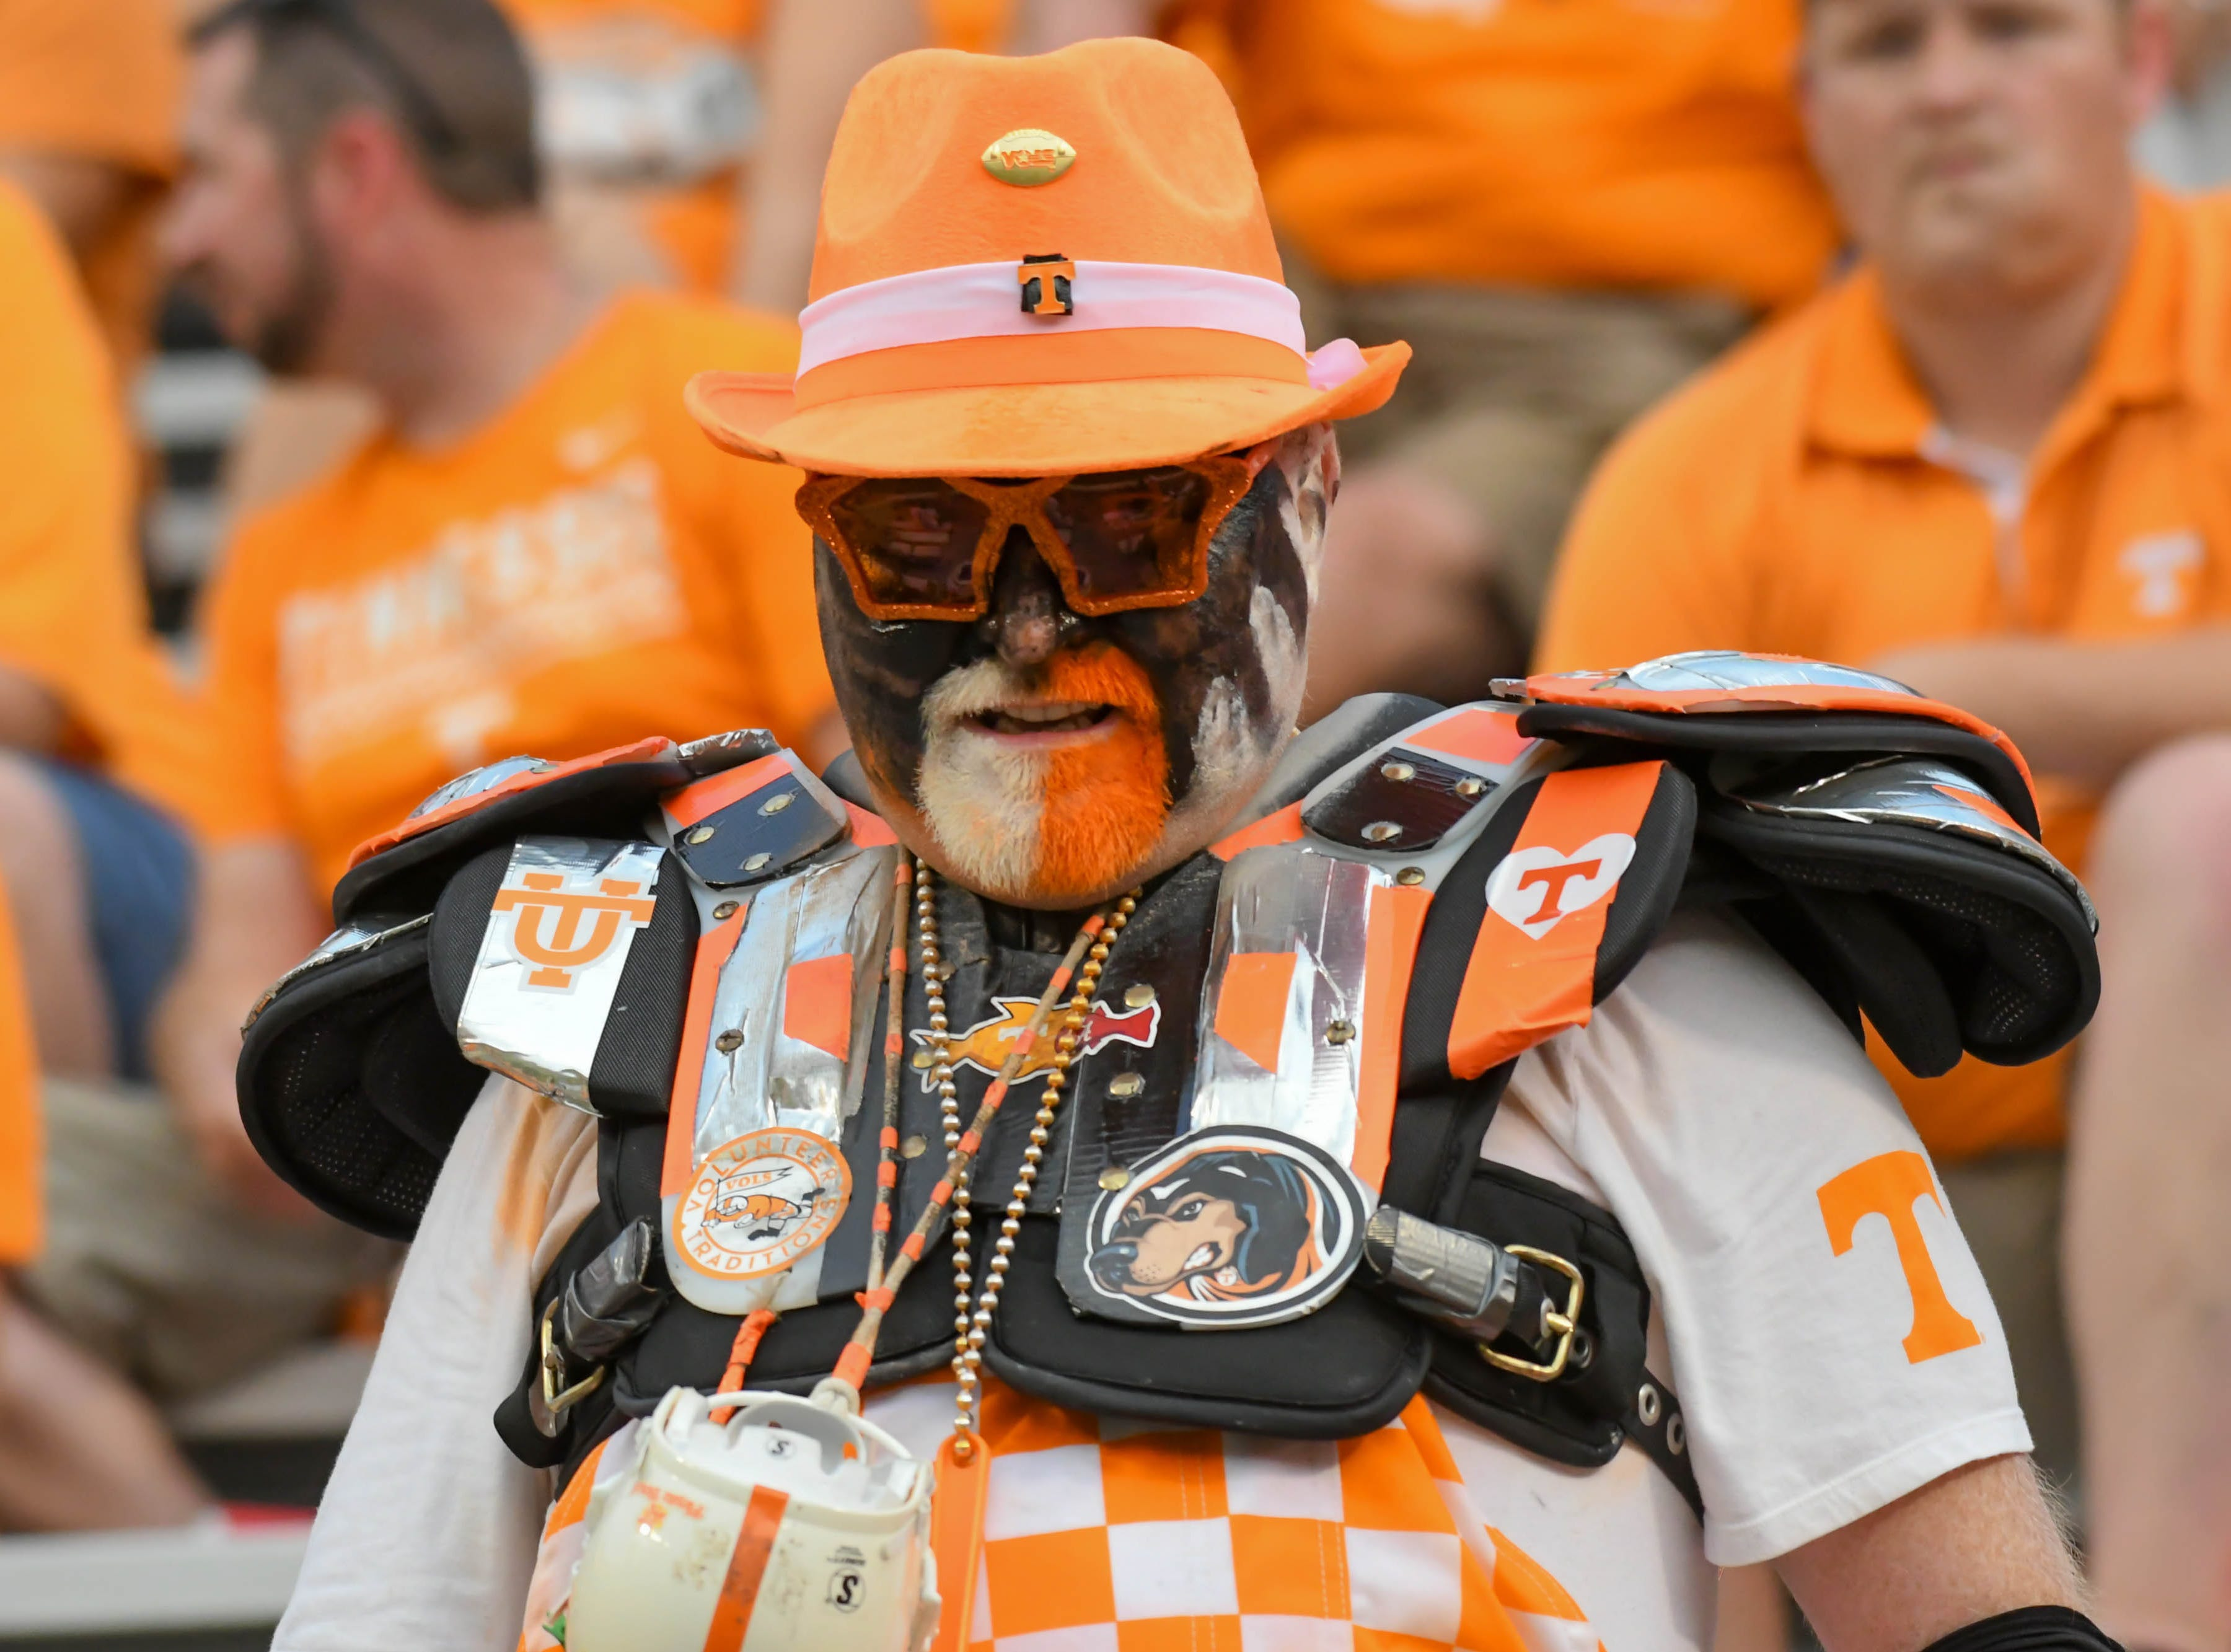 Week 2: A Tennessee Volunteers fan during the second half against the East Tennessee State Buccaneers at Neyland Stadium.